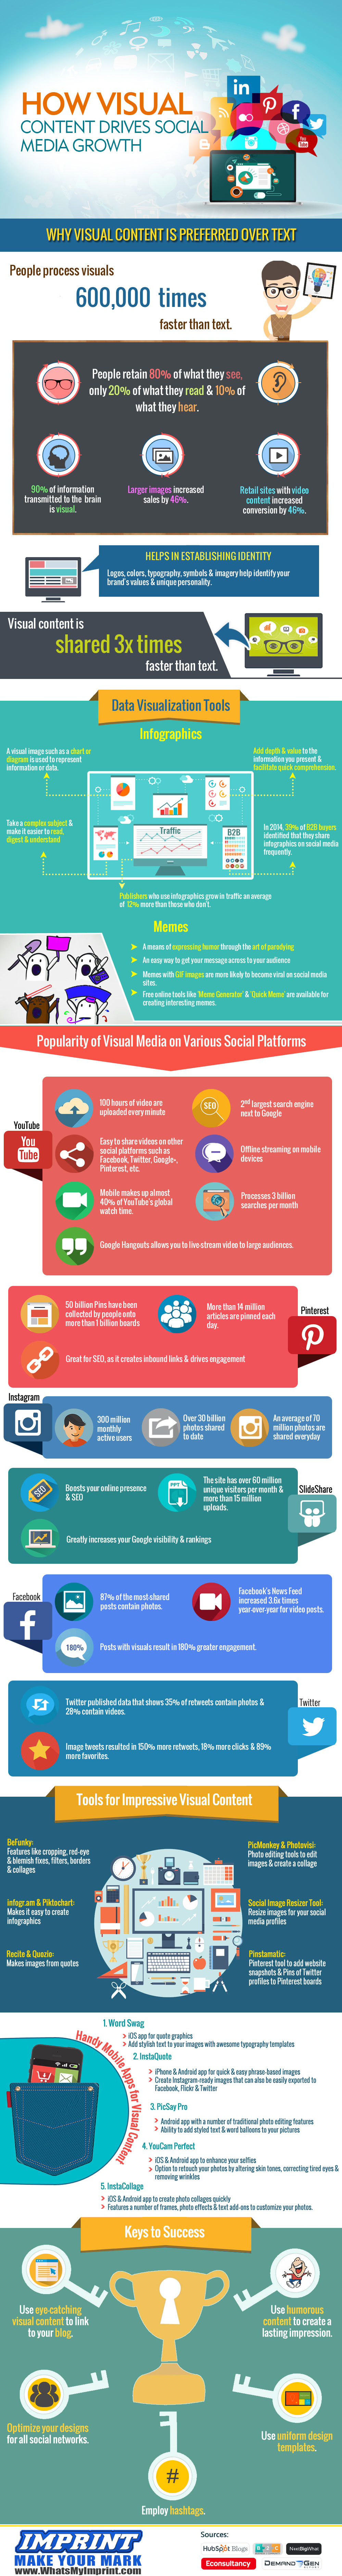 Visual Infographic fpr Social Media Growth http